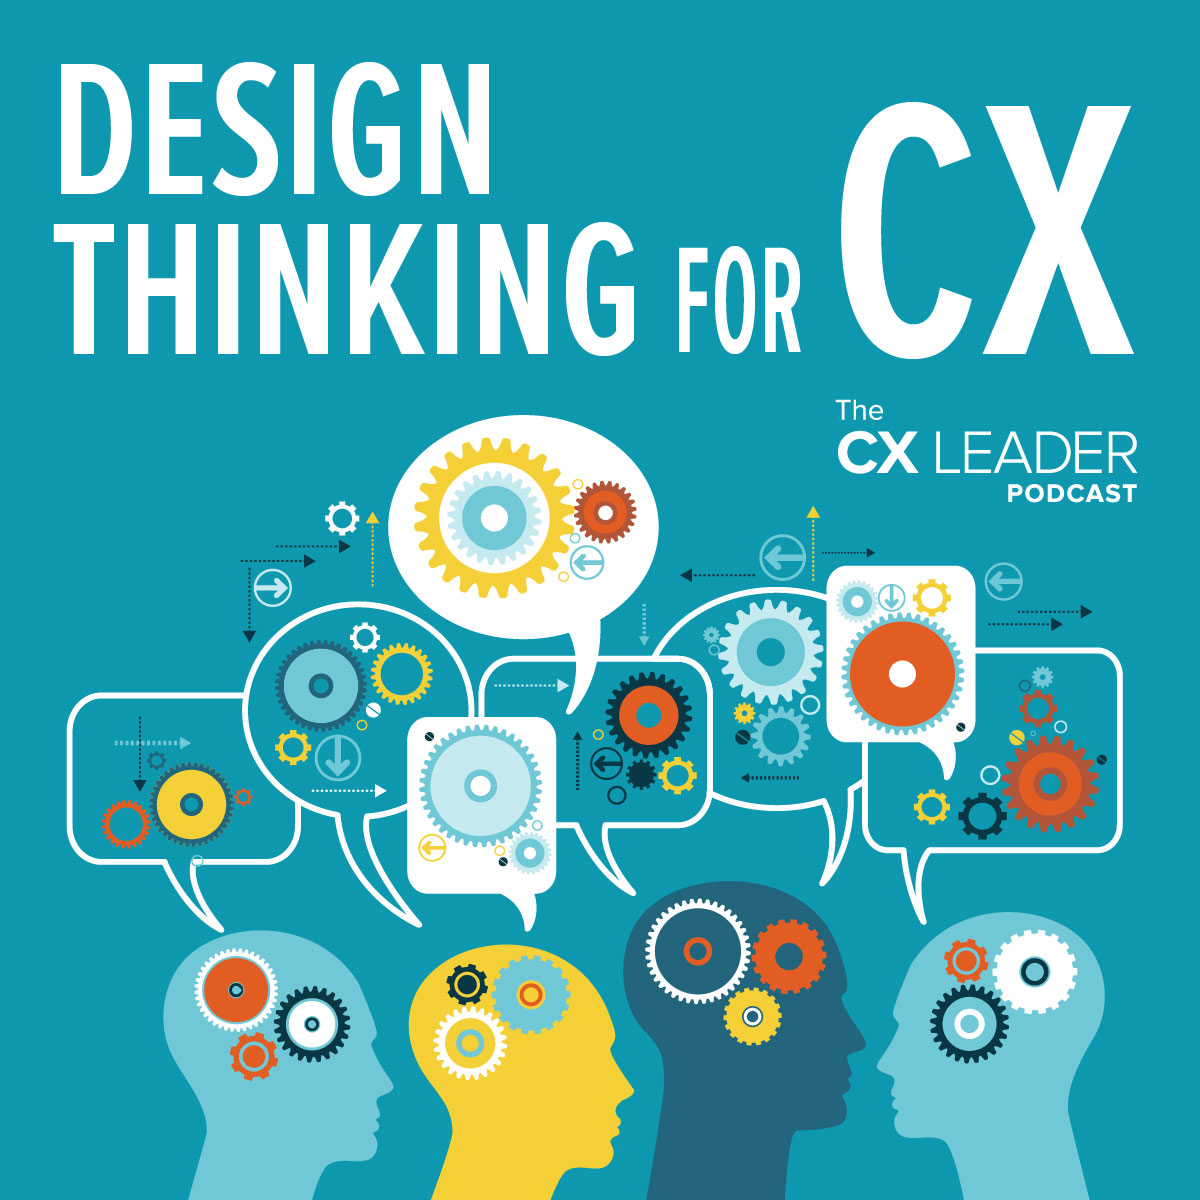 Design Thinking for CX